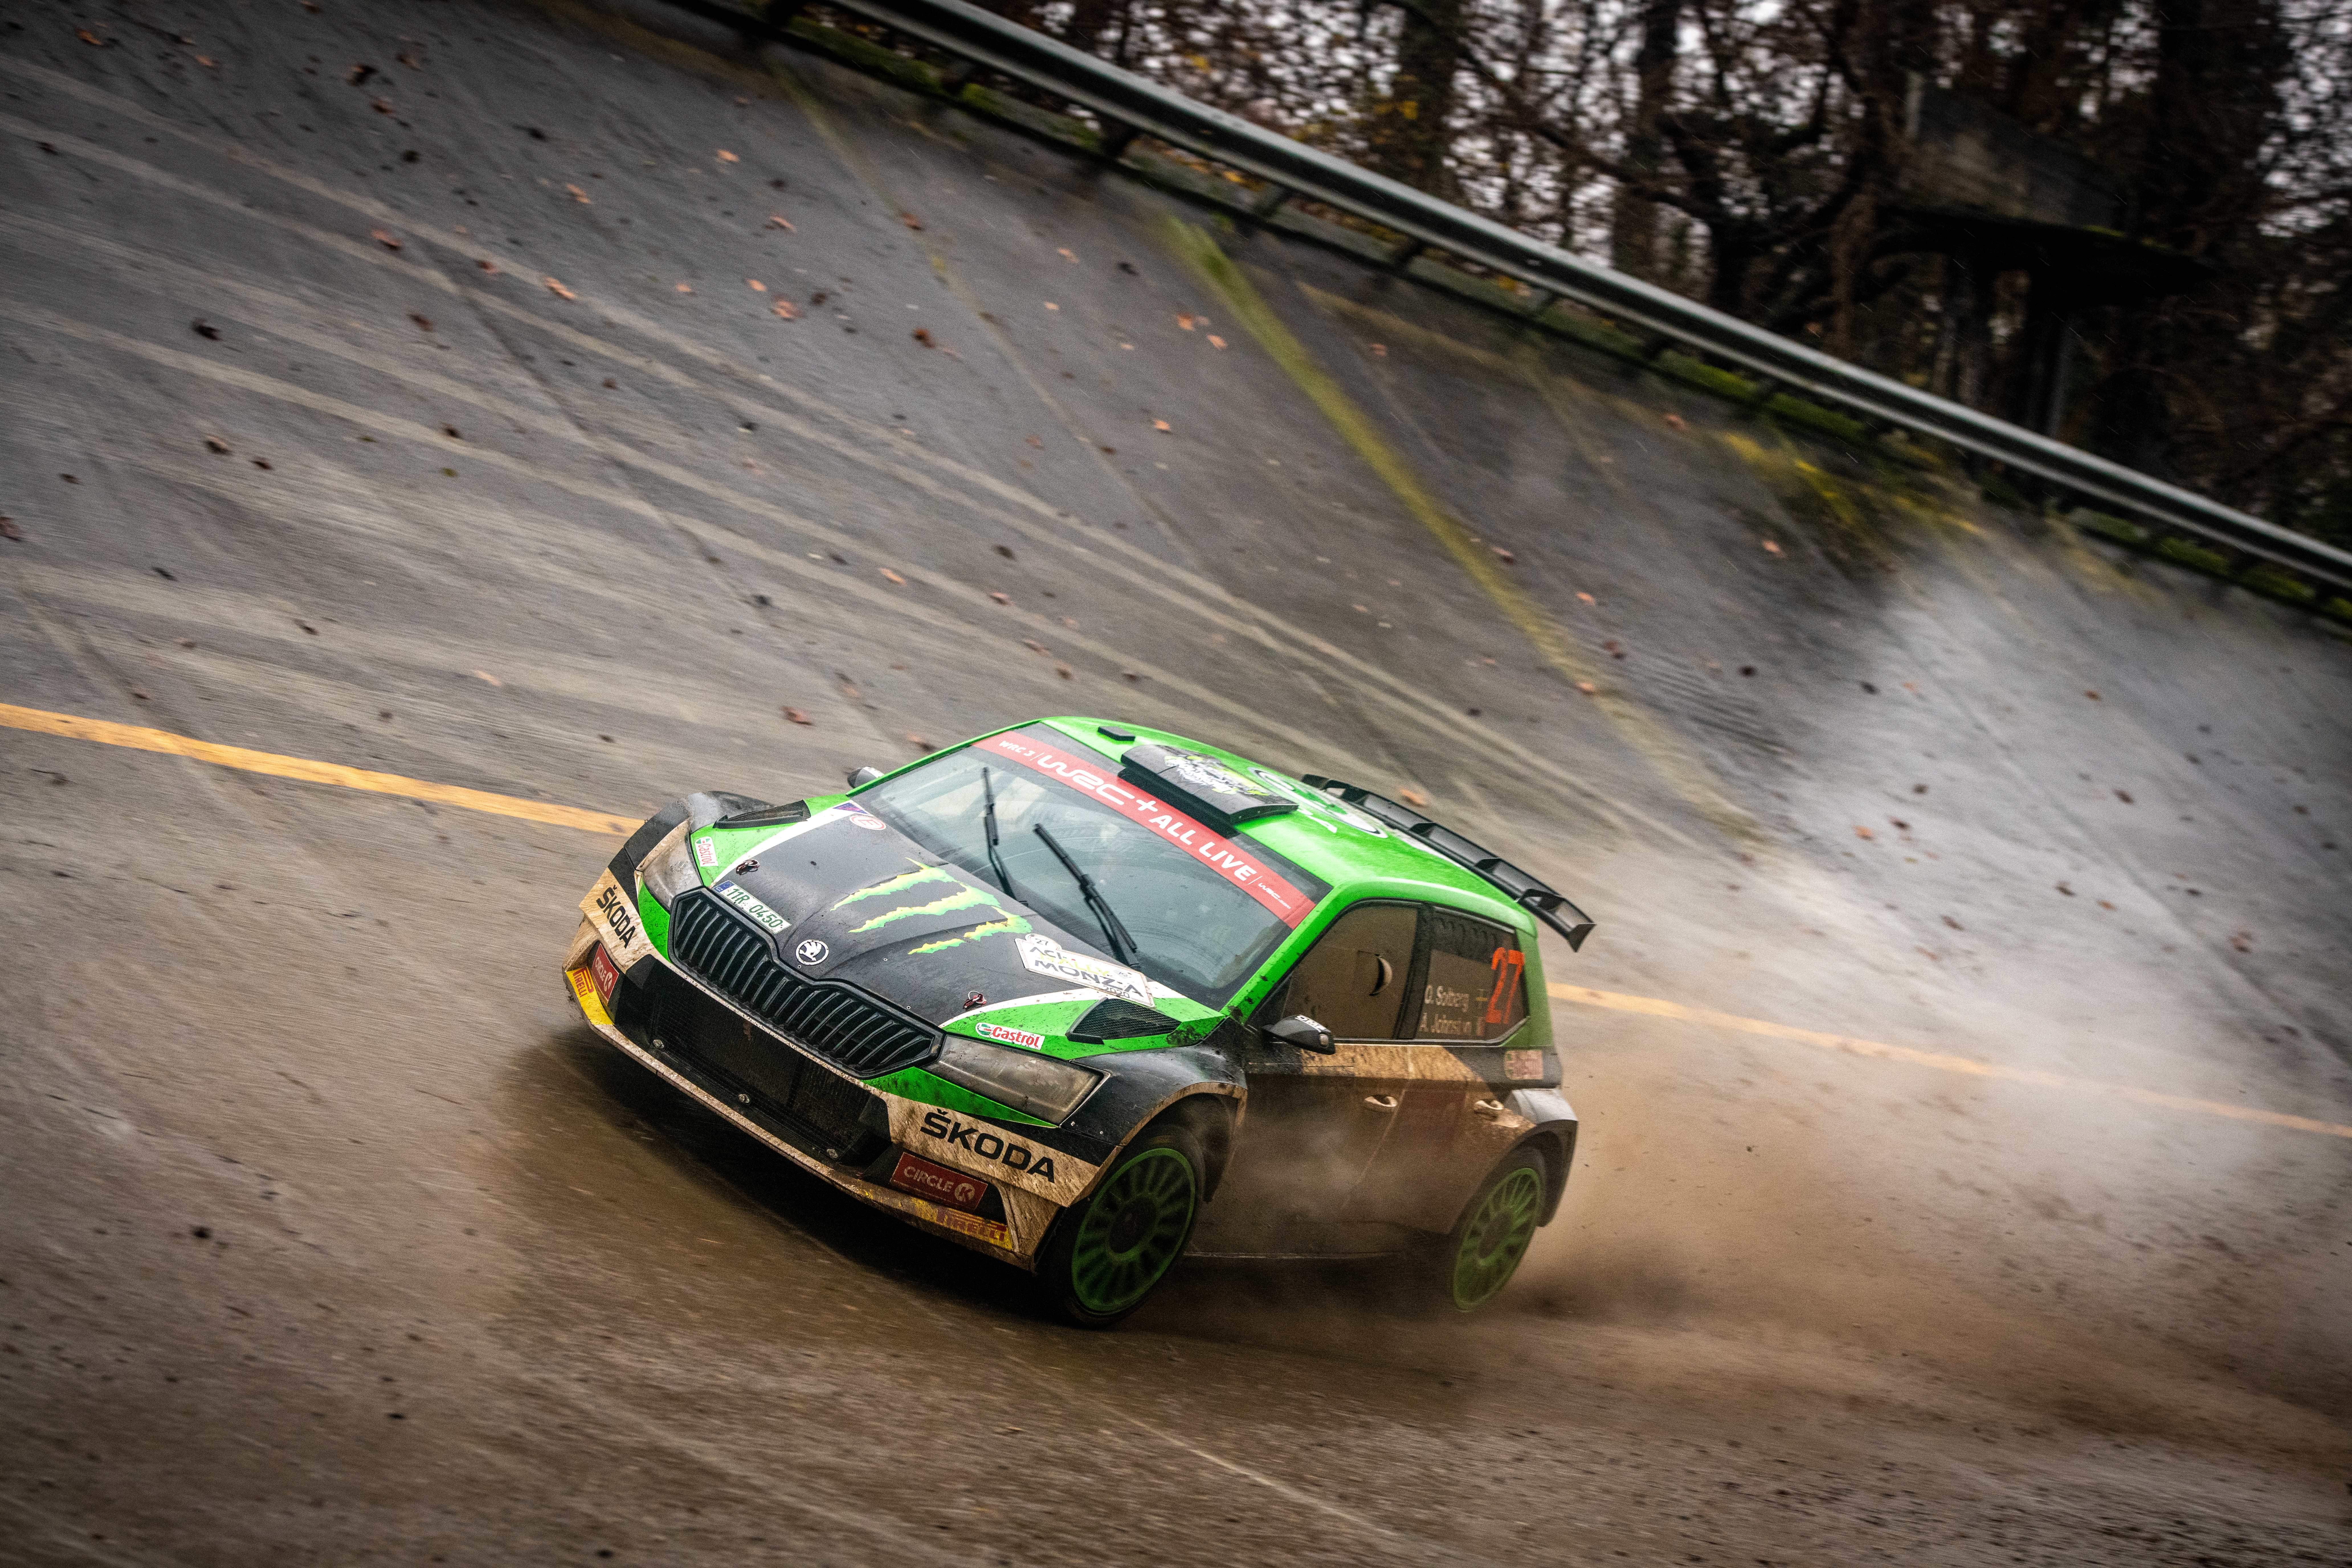 ACI Rally Monza: Clever tactics pays off as SKODA crews lead WRC2 and WRC3 after first leg - Image 3